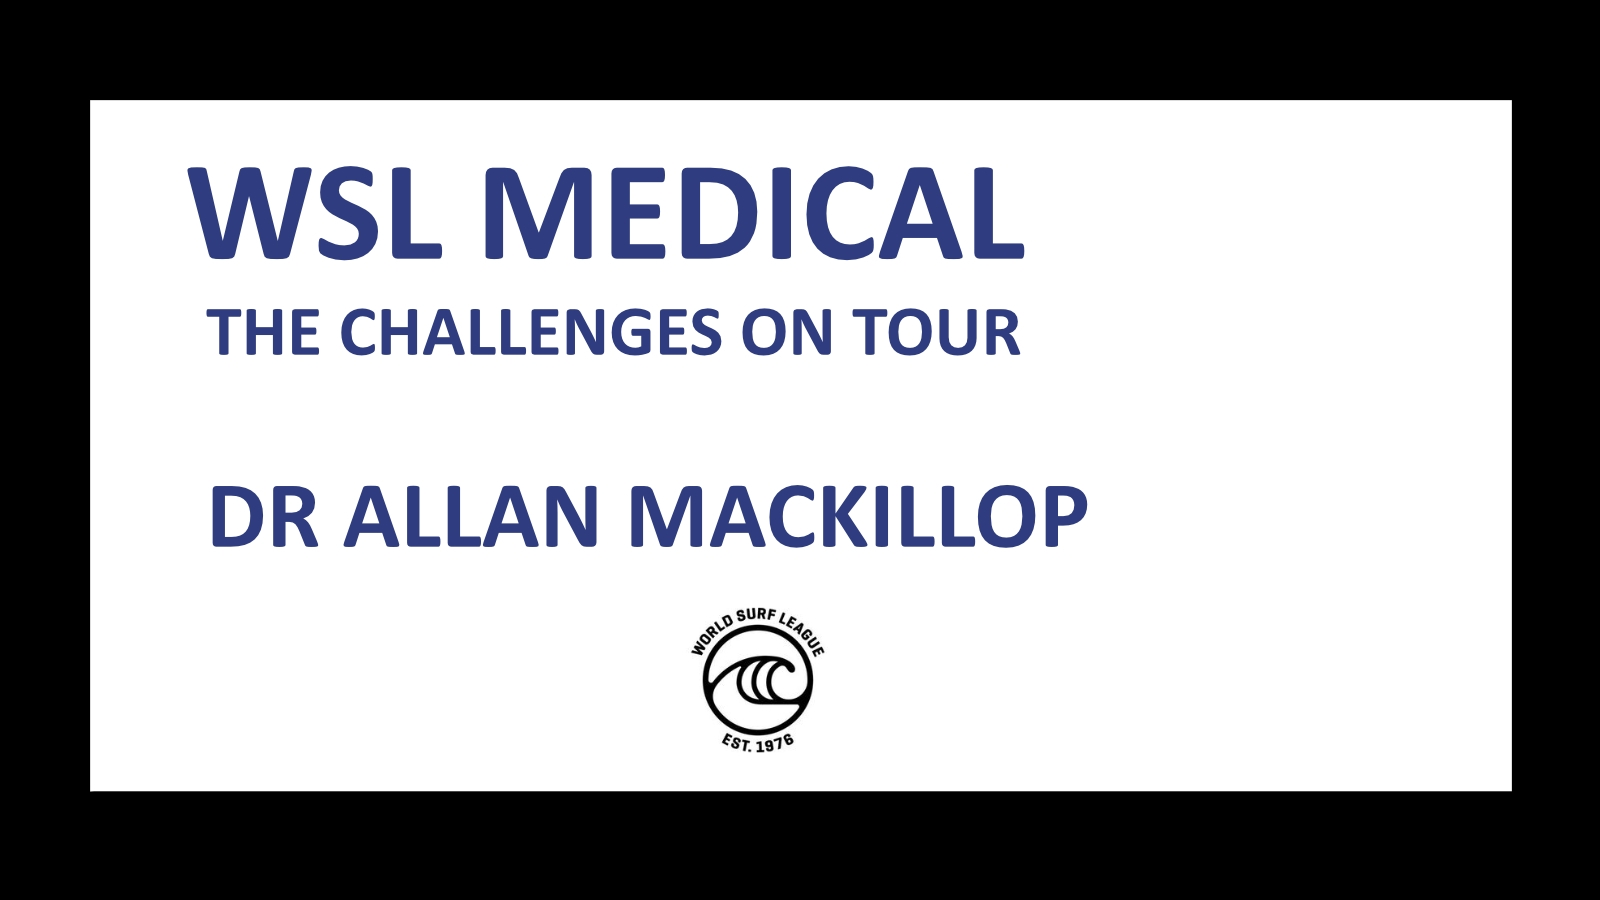 Medical challenges on World Tour